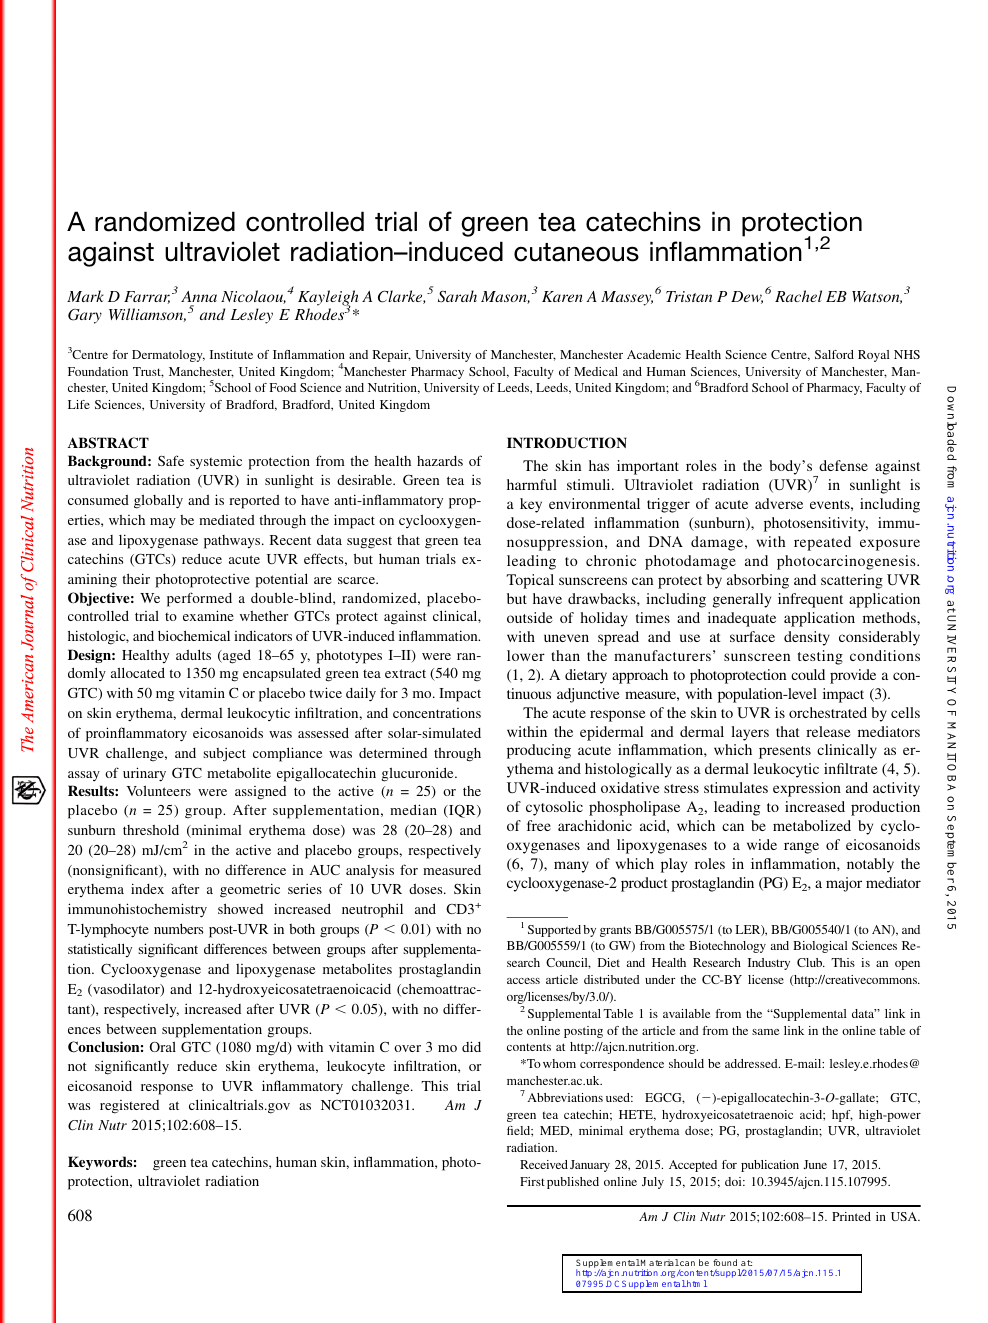 A Randomized Controlled Trial Of Green Tea Catechins In Protection Against Ultraviolet Radiation Induced Cutaneous Inflammation Topic Of Research Paper In Clinical Medicine Download Scholarly Article Pdf And Read For Free On